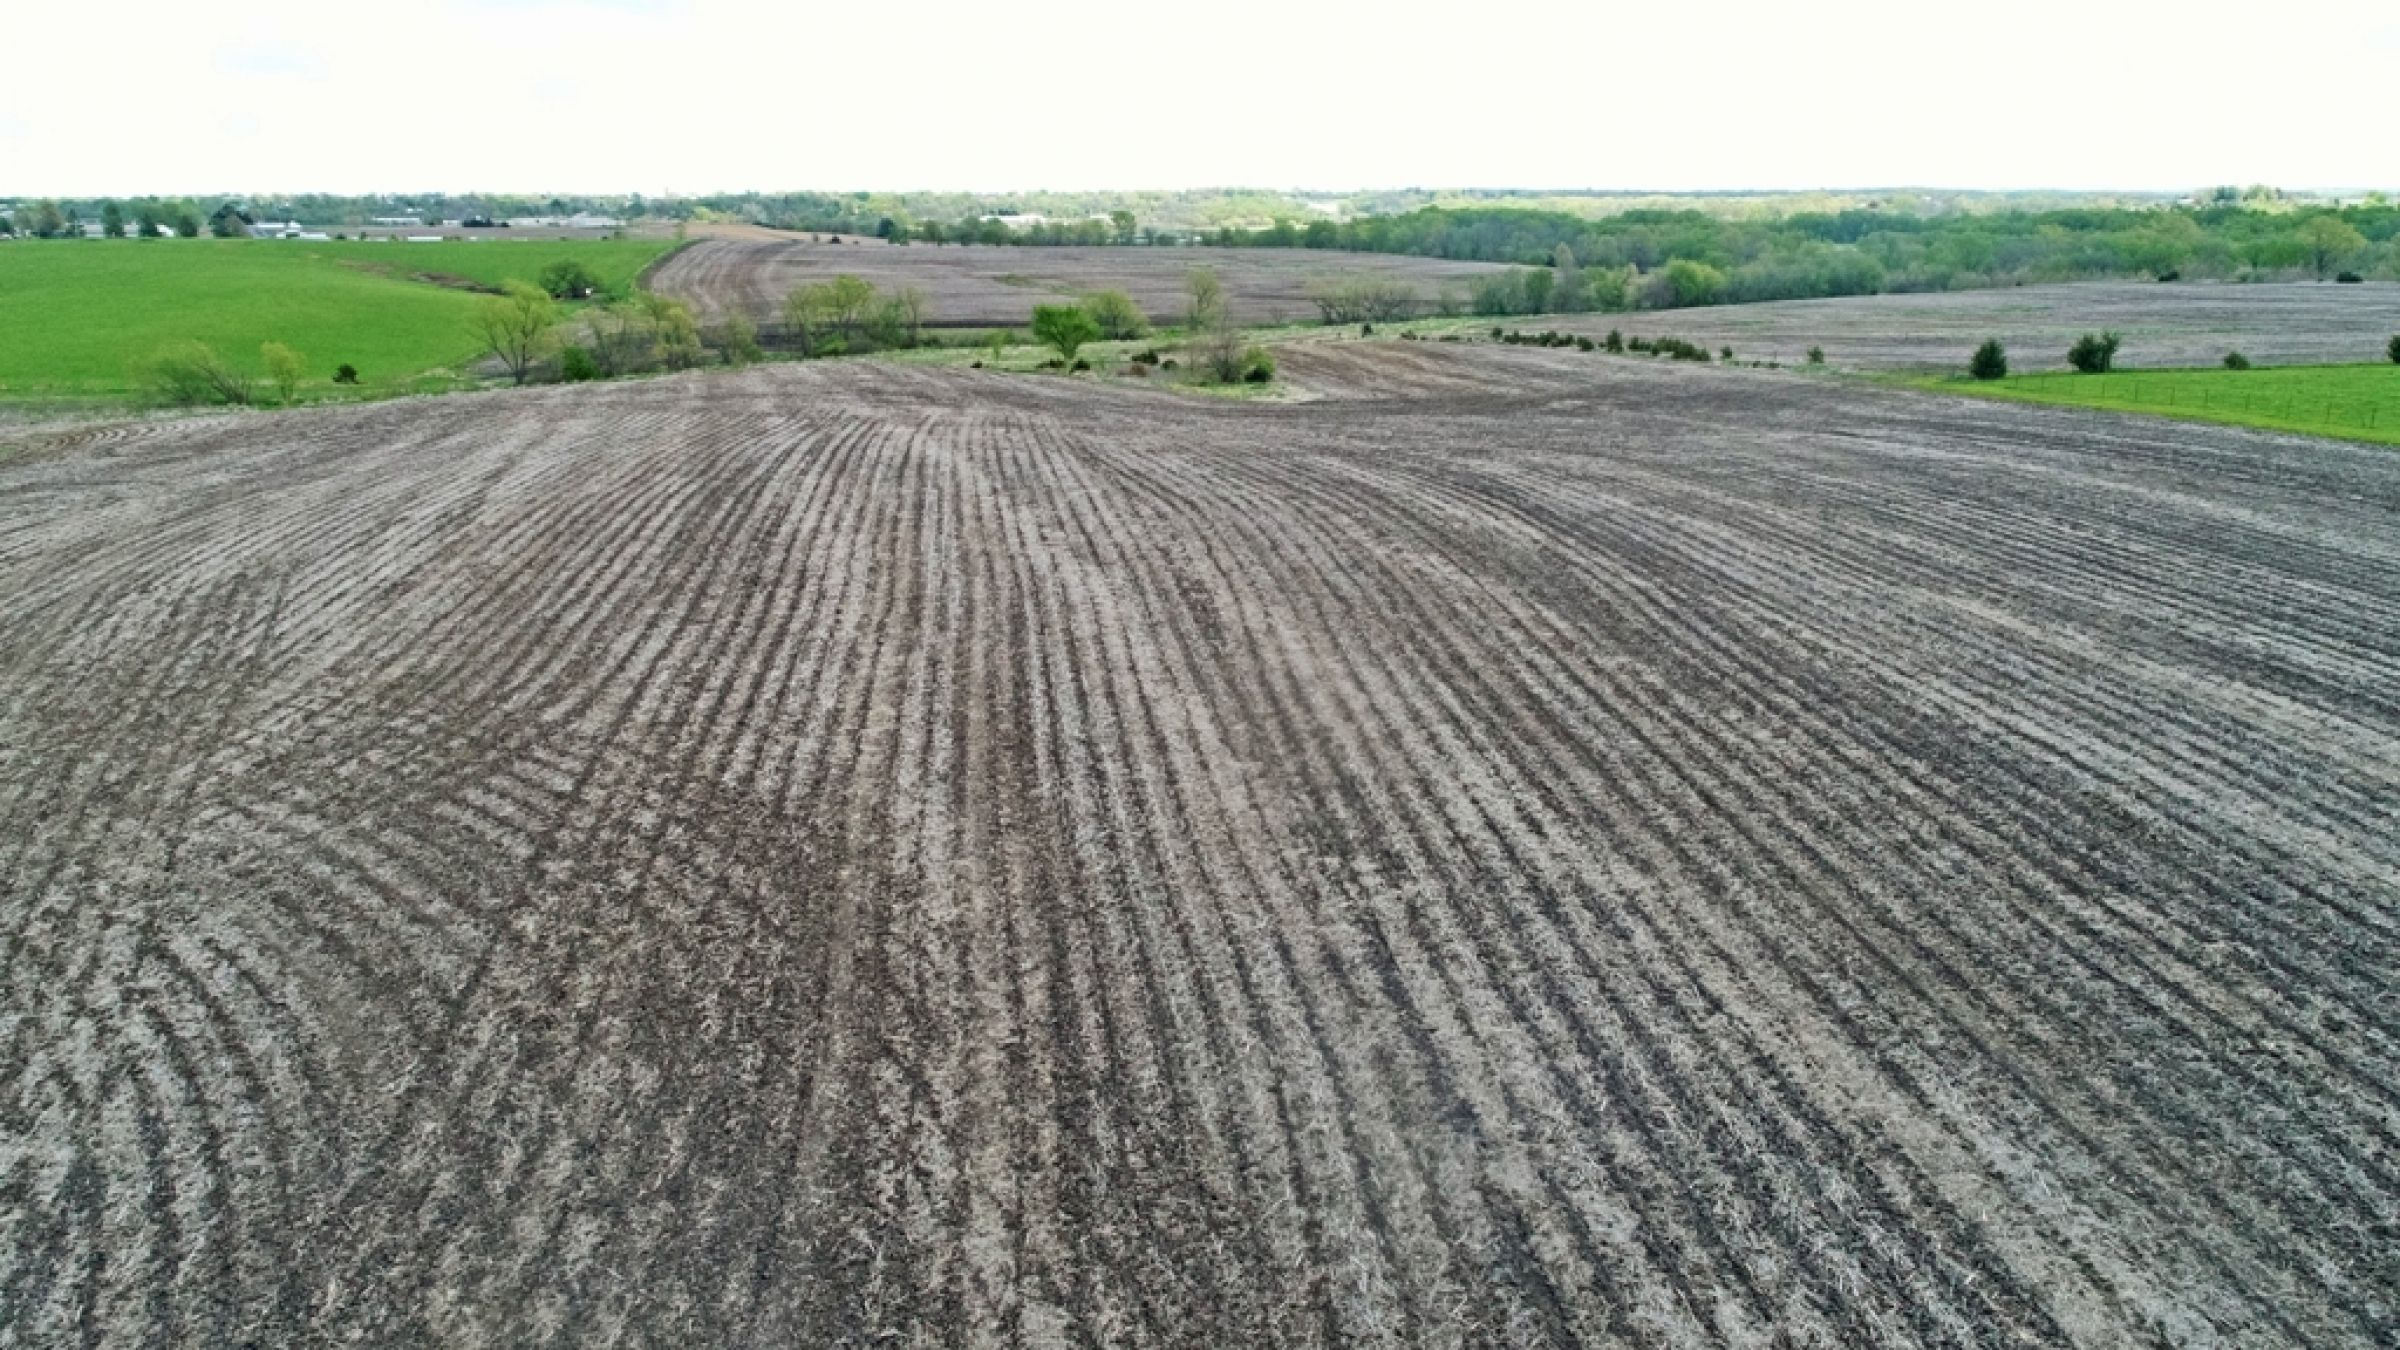 land-lucas-county-iowa-88-acres-listing-number-14991-3-2020-05-06-184045.JPG